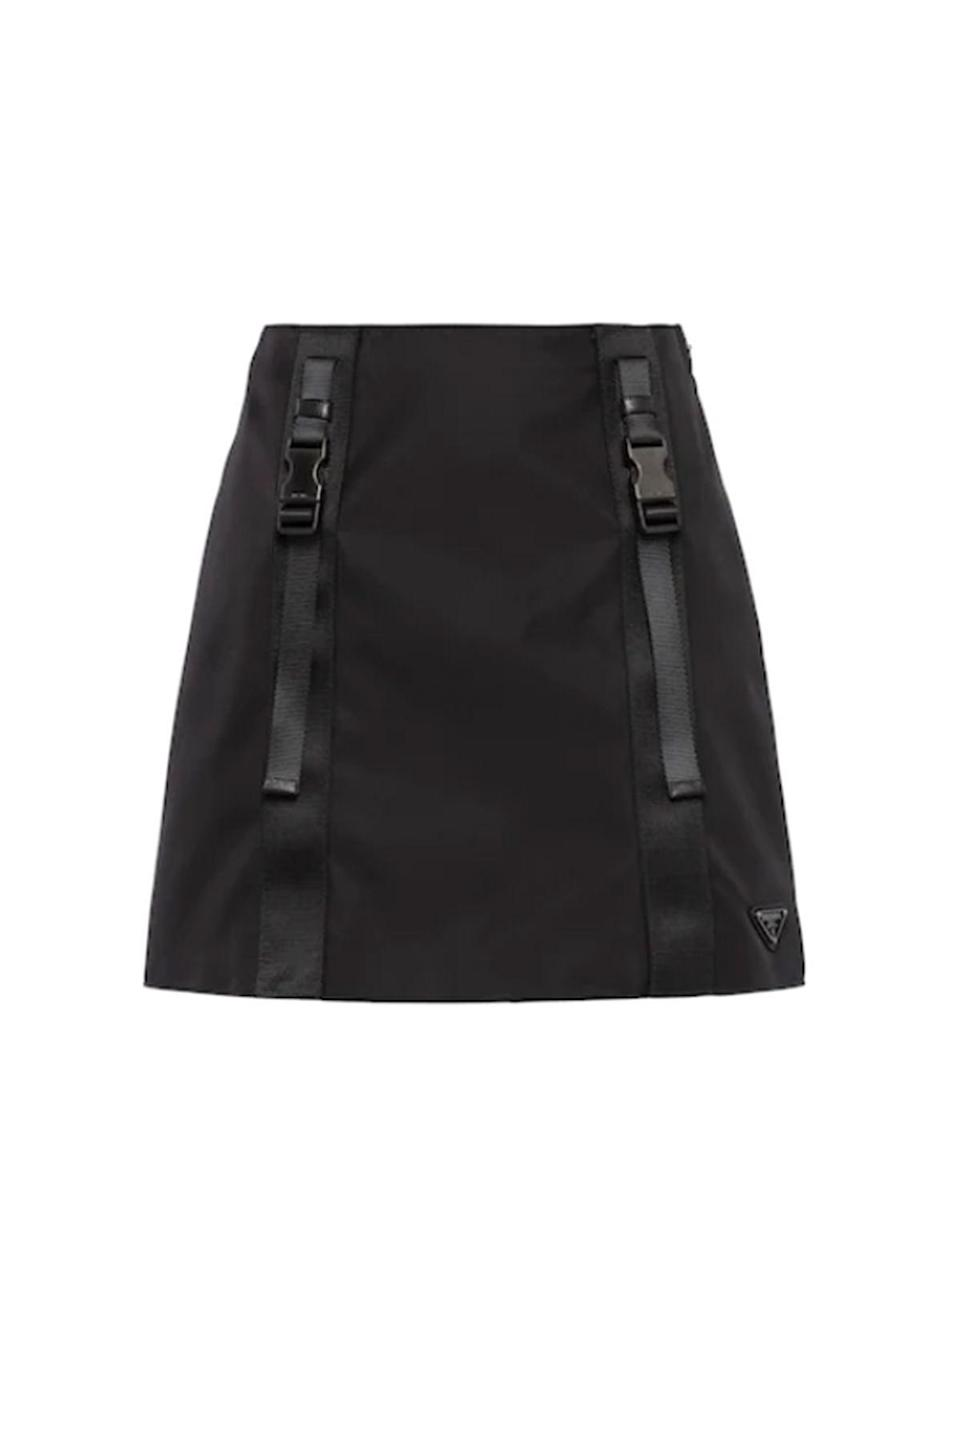 """<p><strong>Prada</strong></p><p>prada.com</p><p><strong>$1100.00</strong></p><p><a href=""""https://www.prada.com/us/en/women/ready_to_wear/skirts/products.re-nylon_gabardine_miniskirt.21H875_1YFL_F0002_S_202.html"""" rel=""""nofollow noopener"""" target=""""_blank"""" data-ylk=""""slk:Shop Now"""" class=""""link rapid-noclick-resp"""">Shop Now</a></p><p>""""Nylon is a signature fabric for Prada, and in an effort to be more sustainable, the company has committed to converting all virgin nylon into regenerated nylon by the end of this year. The durable material is made up of fishing nets, discarded nylon and other industrial waste to create shoes, bags, and as of last year, ready-to-wear. This mini skirt will be perfect for warm summer days ahead."""" - <em>MaryKate Boylan, Senior Fashion Editor</em></p>"""